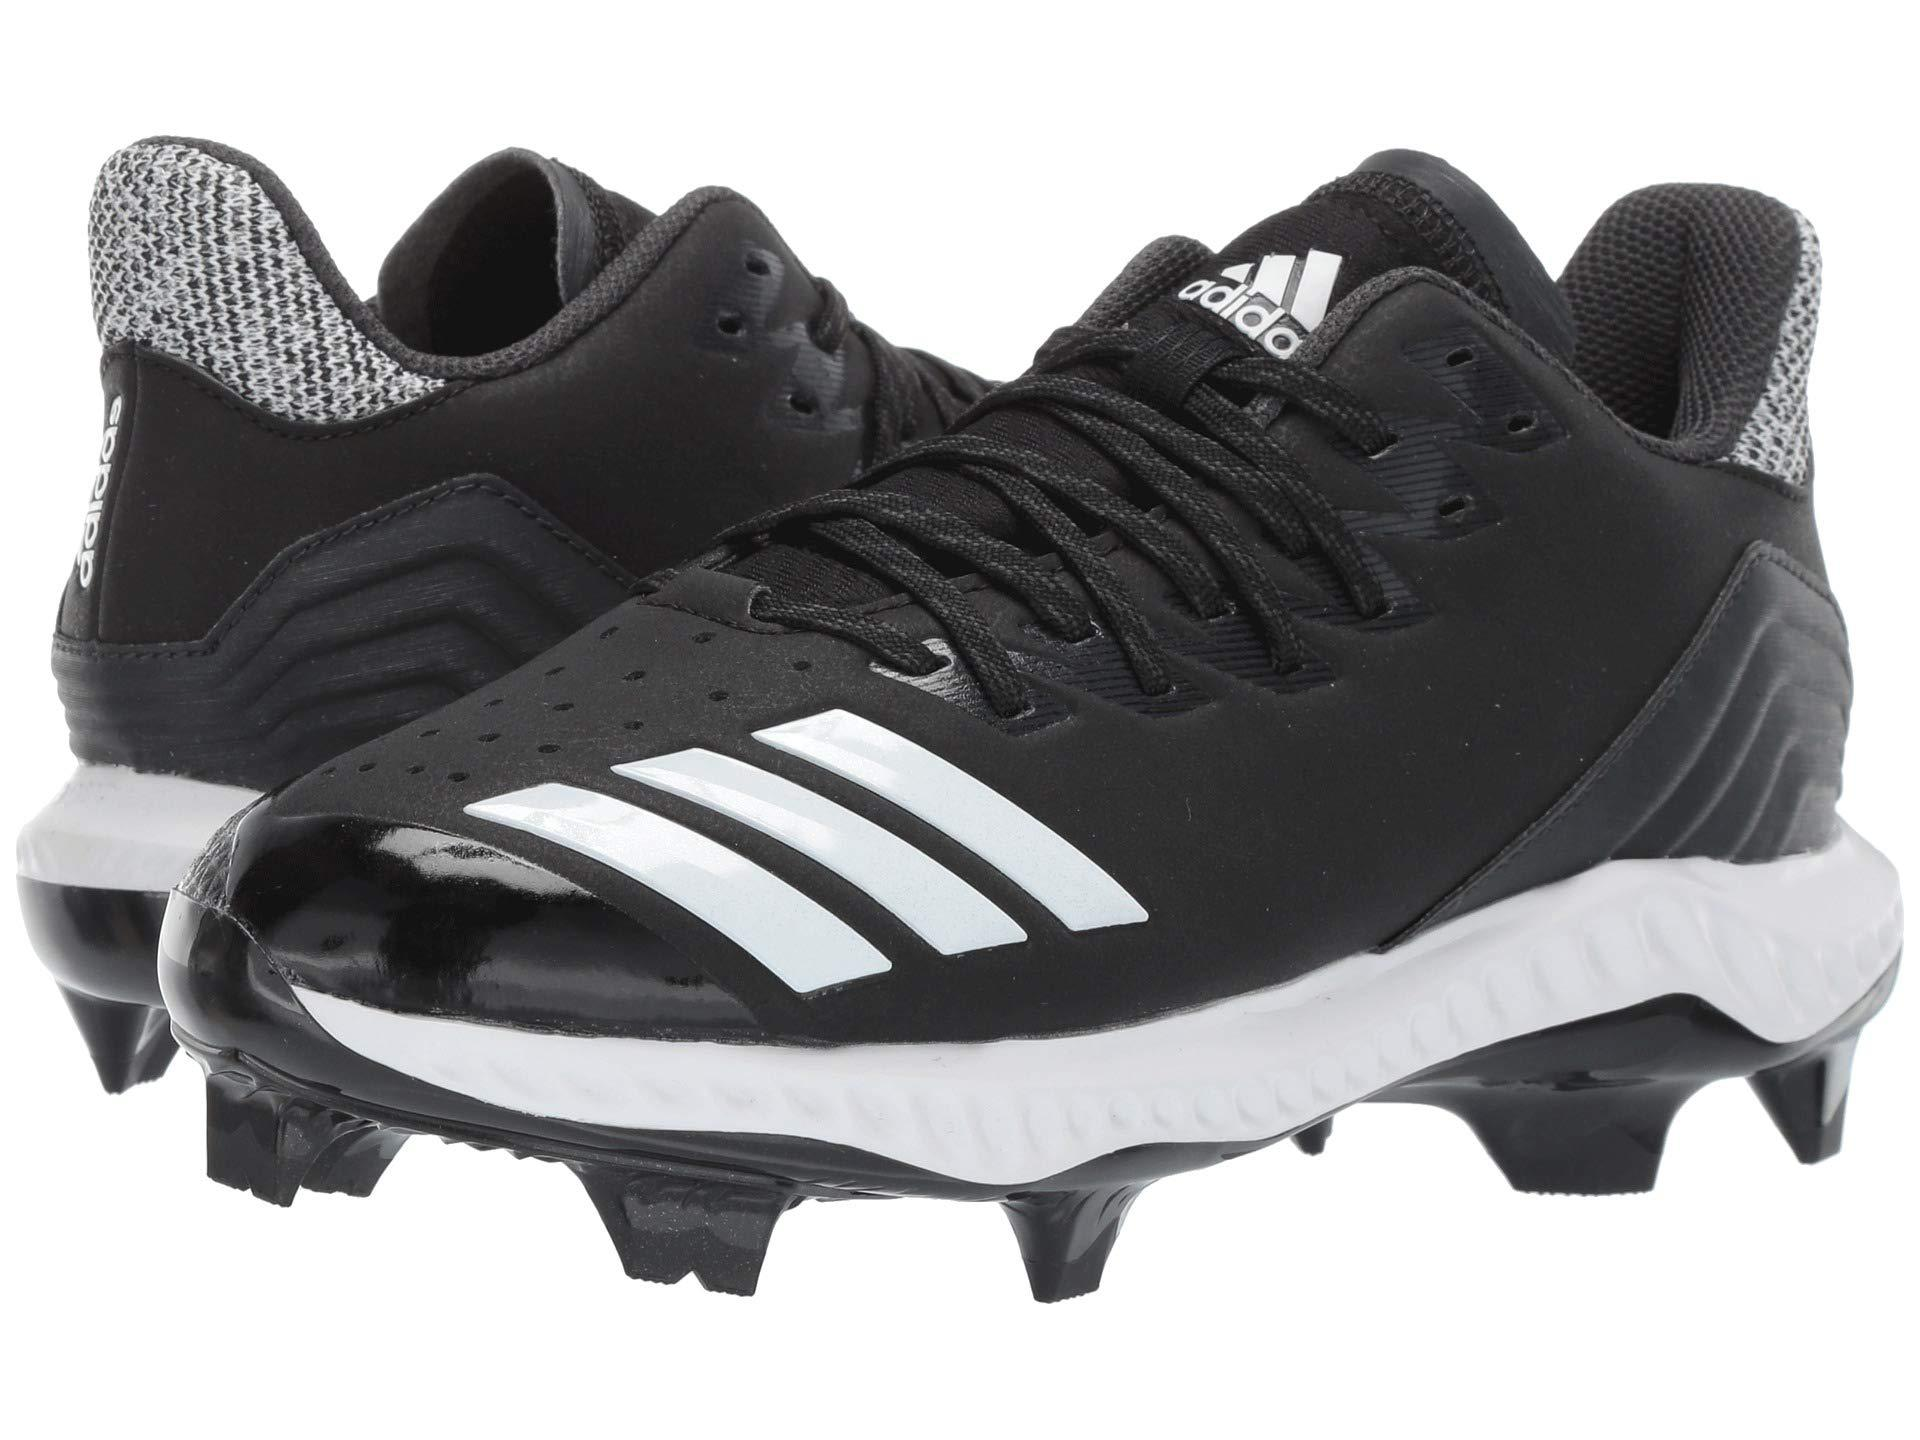 ae5346104d2cc Adidas - Icon Bounce Tpu (core Black footwear White carbon) Women s Cleated.  View fullscreen